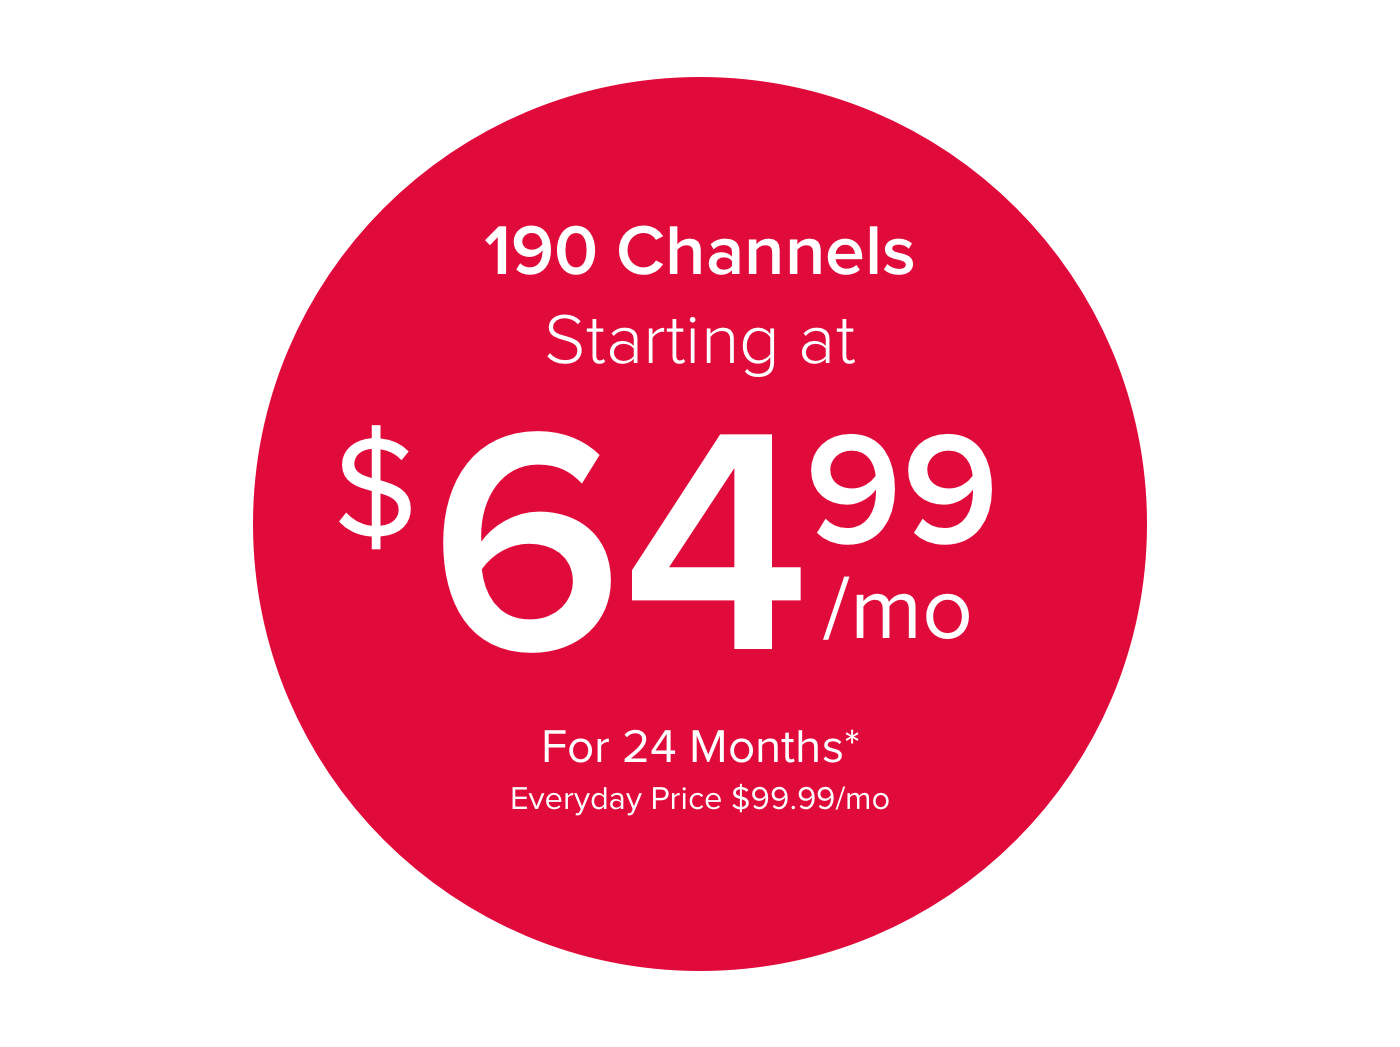 190 Channels Starting at $64.99/mo for 24 Months*  Everyday price $99.99/mo